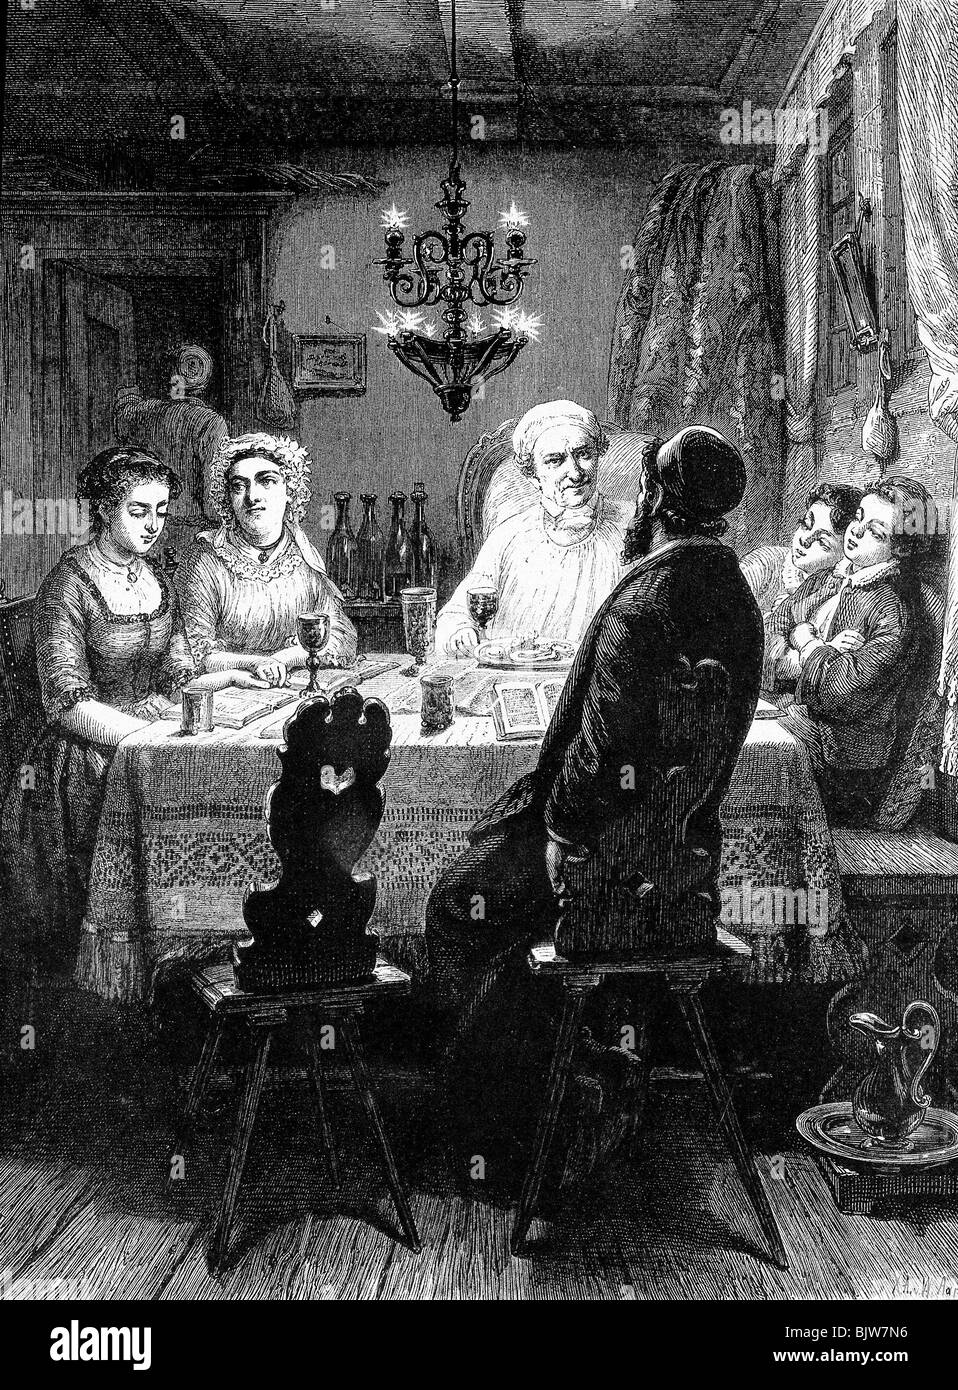 religion, Judaism, tradition, Passover Seder, wood engraving from 1867, Additional-Rights-Clearances-NA - Stock Image